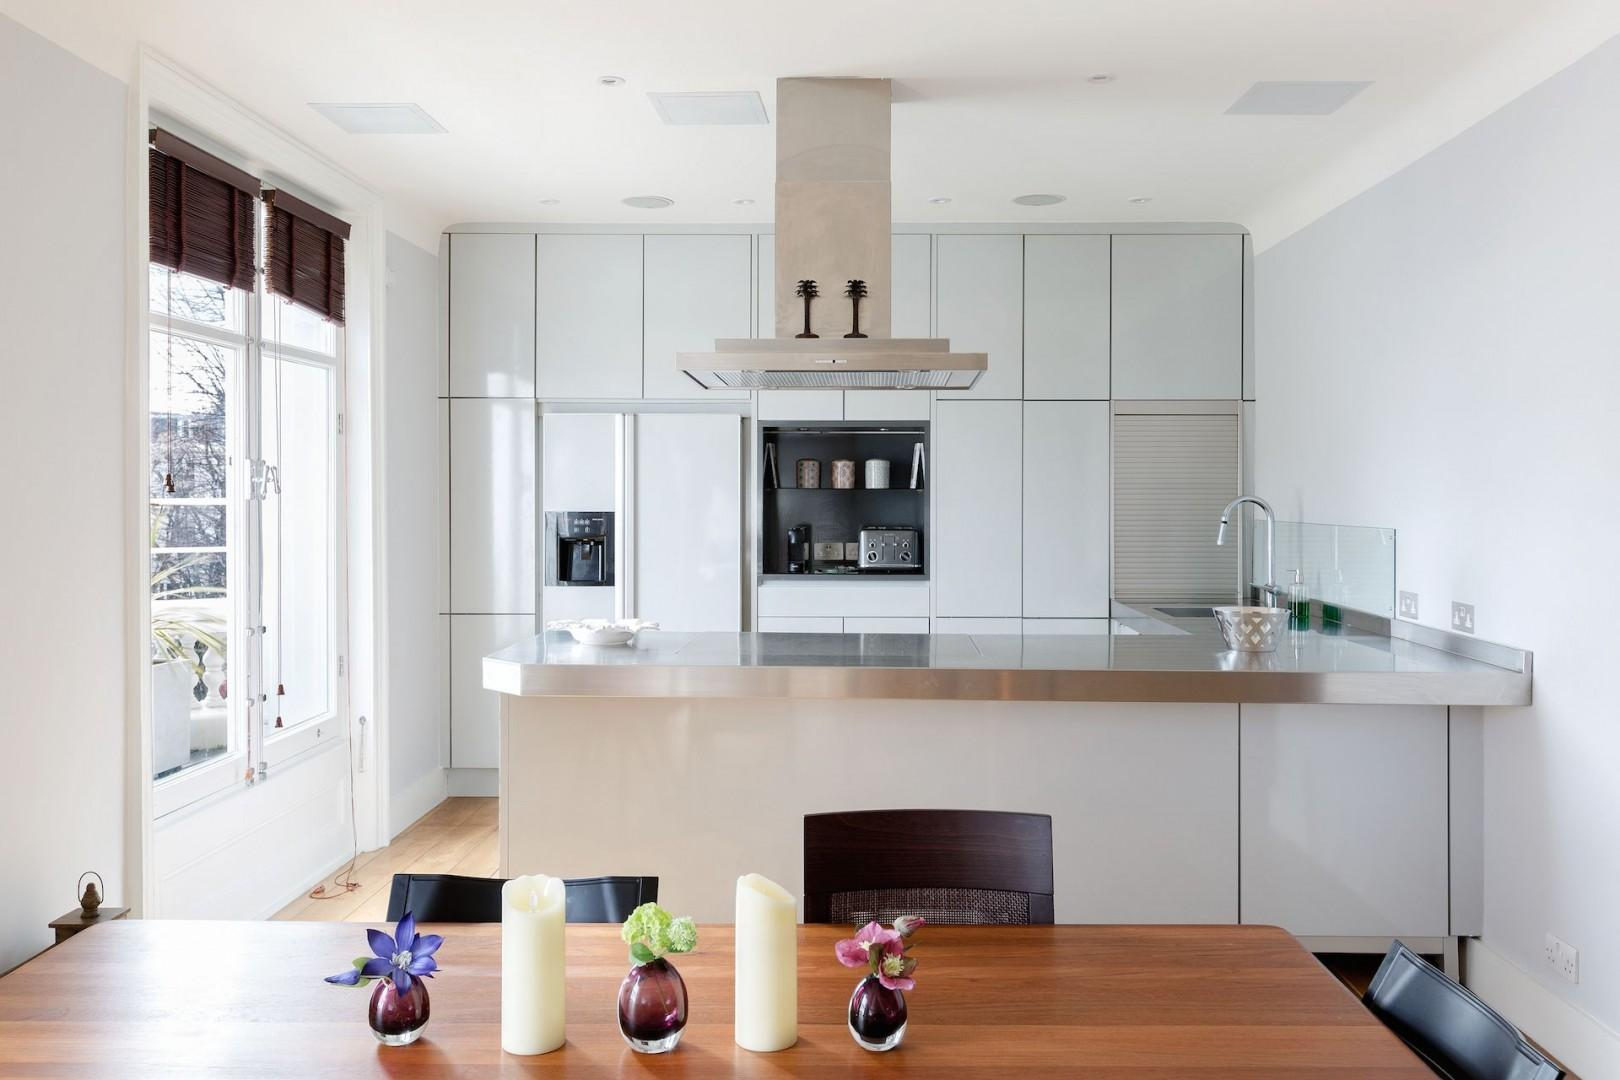 The fully-equipped kitchen is modern and sleek